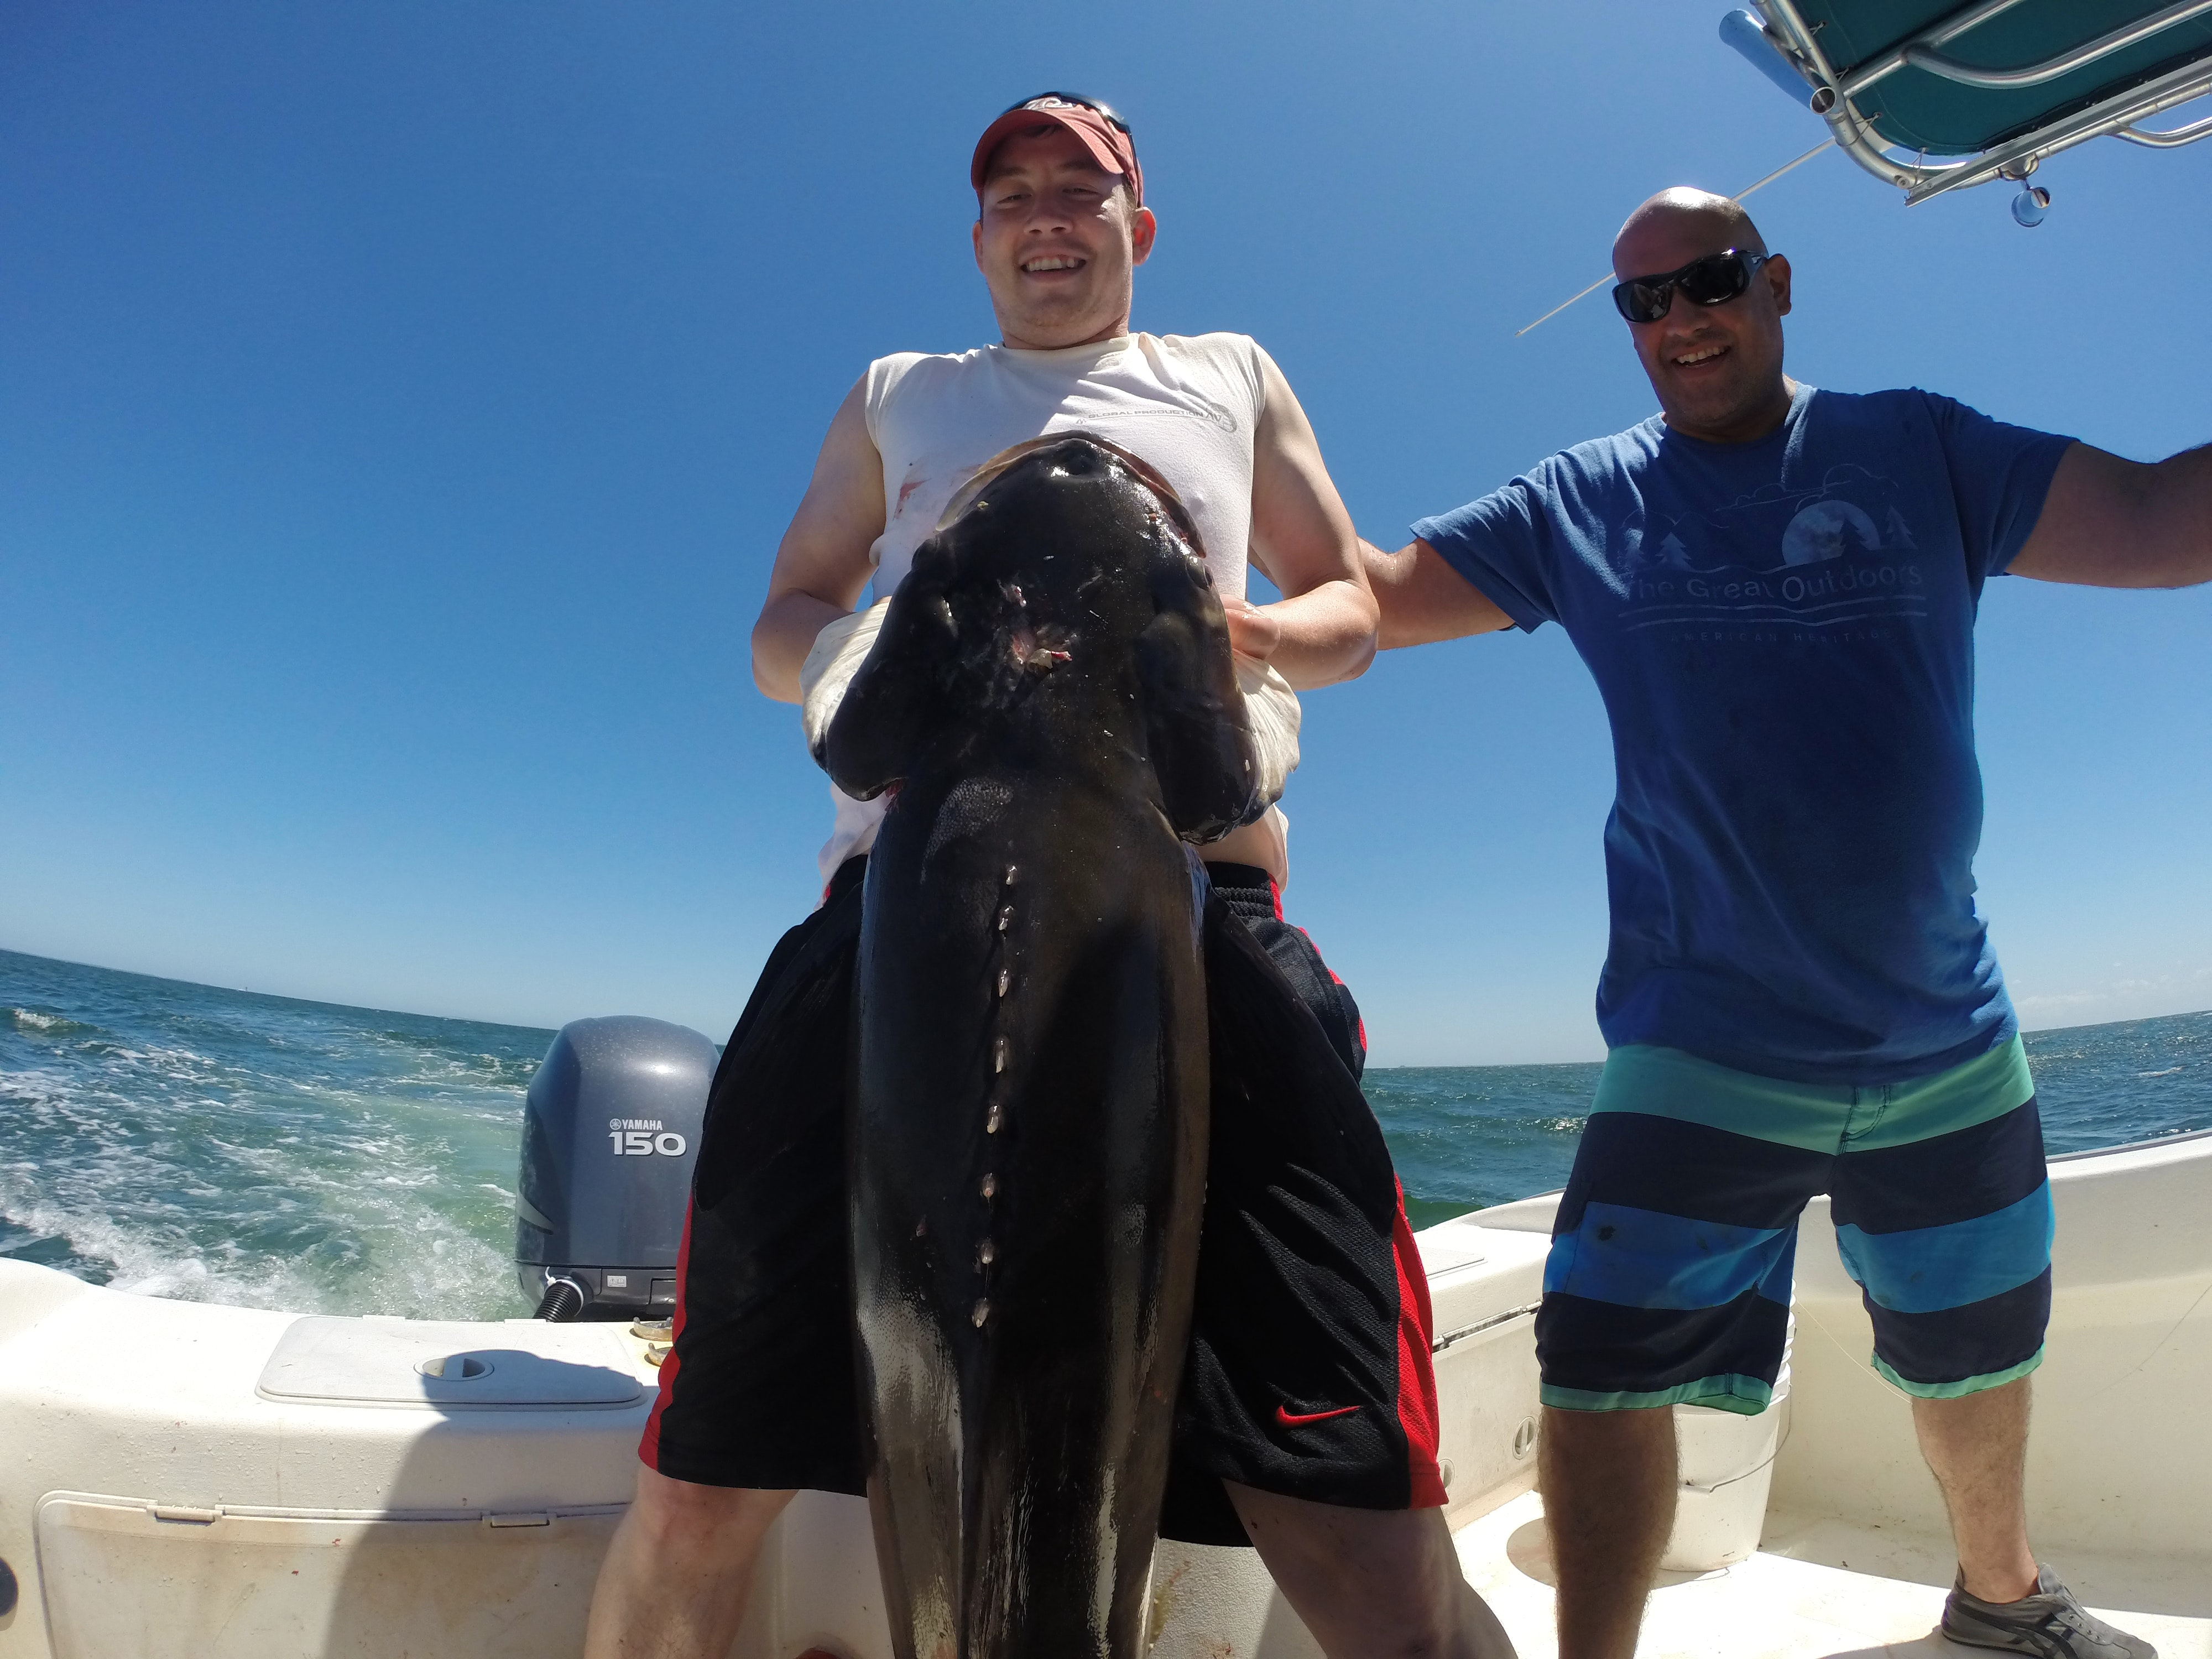 A Fisherman struggles to hold up a massive cobia